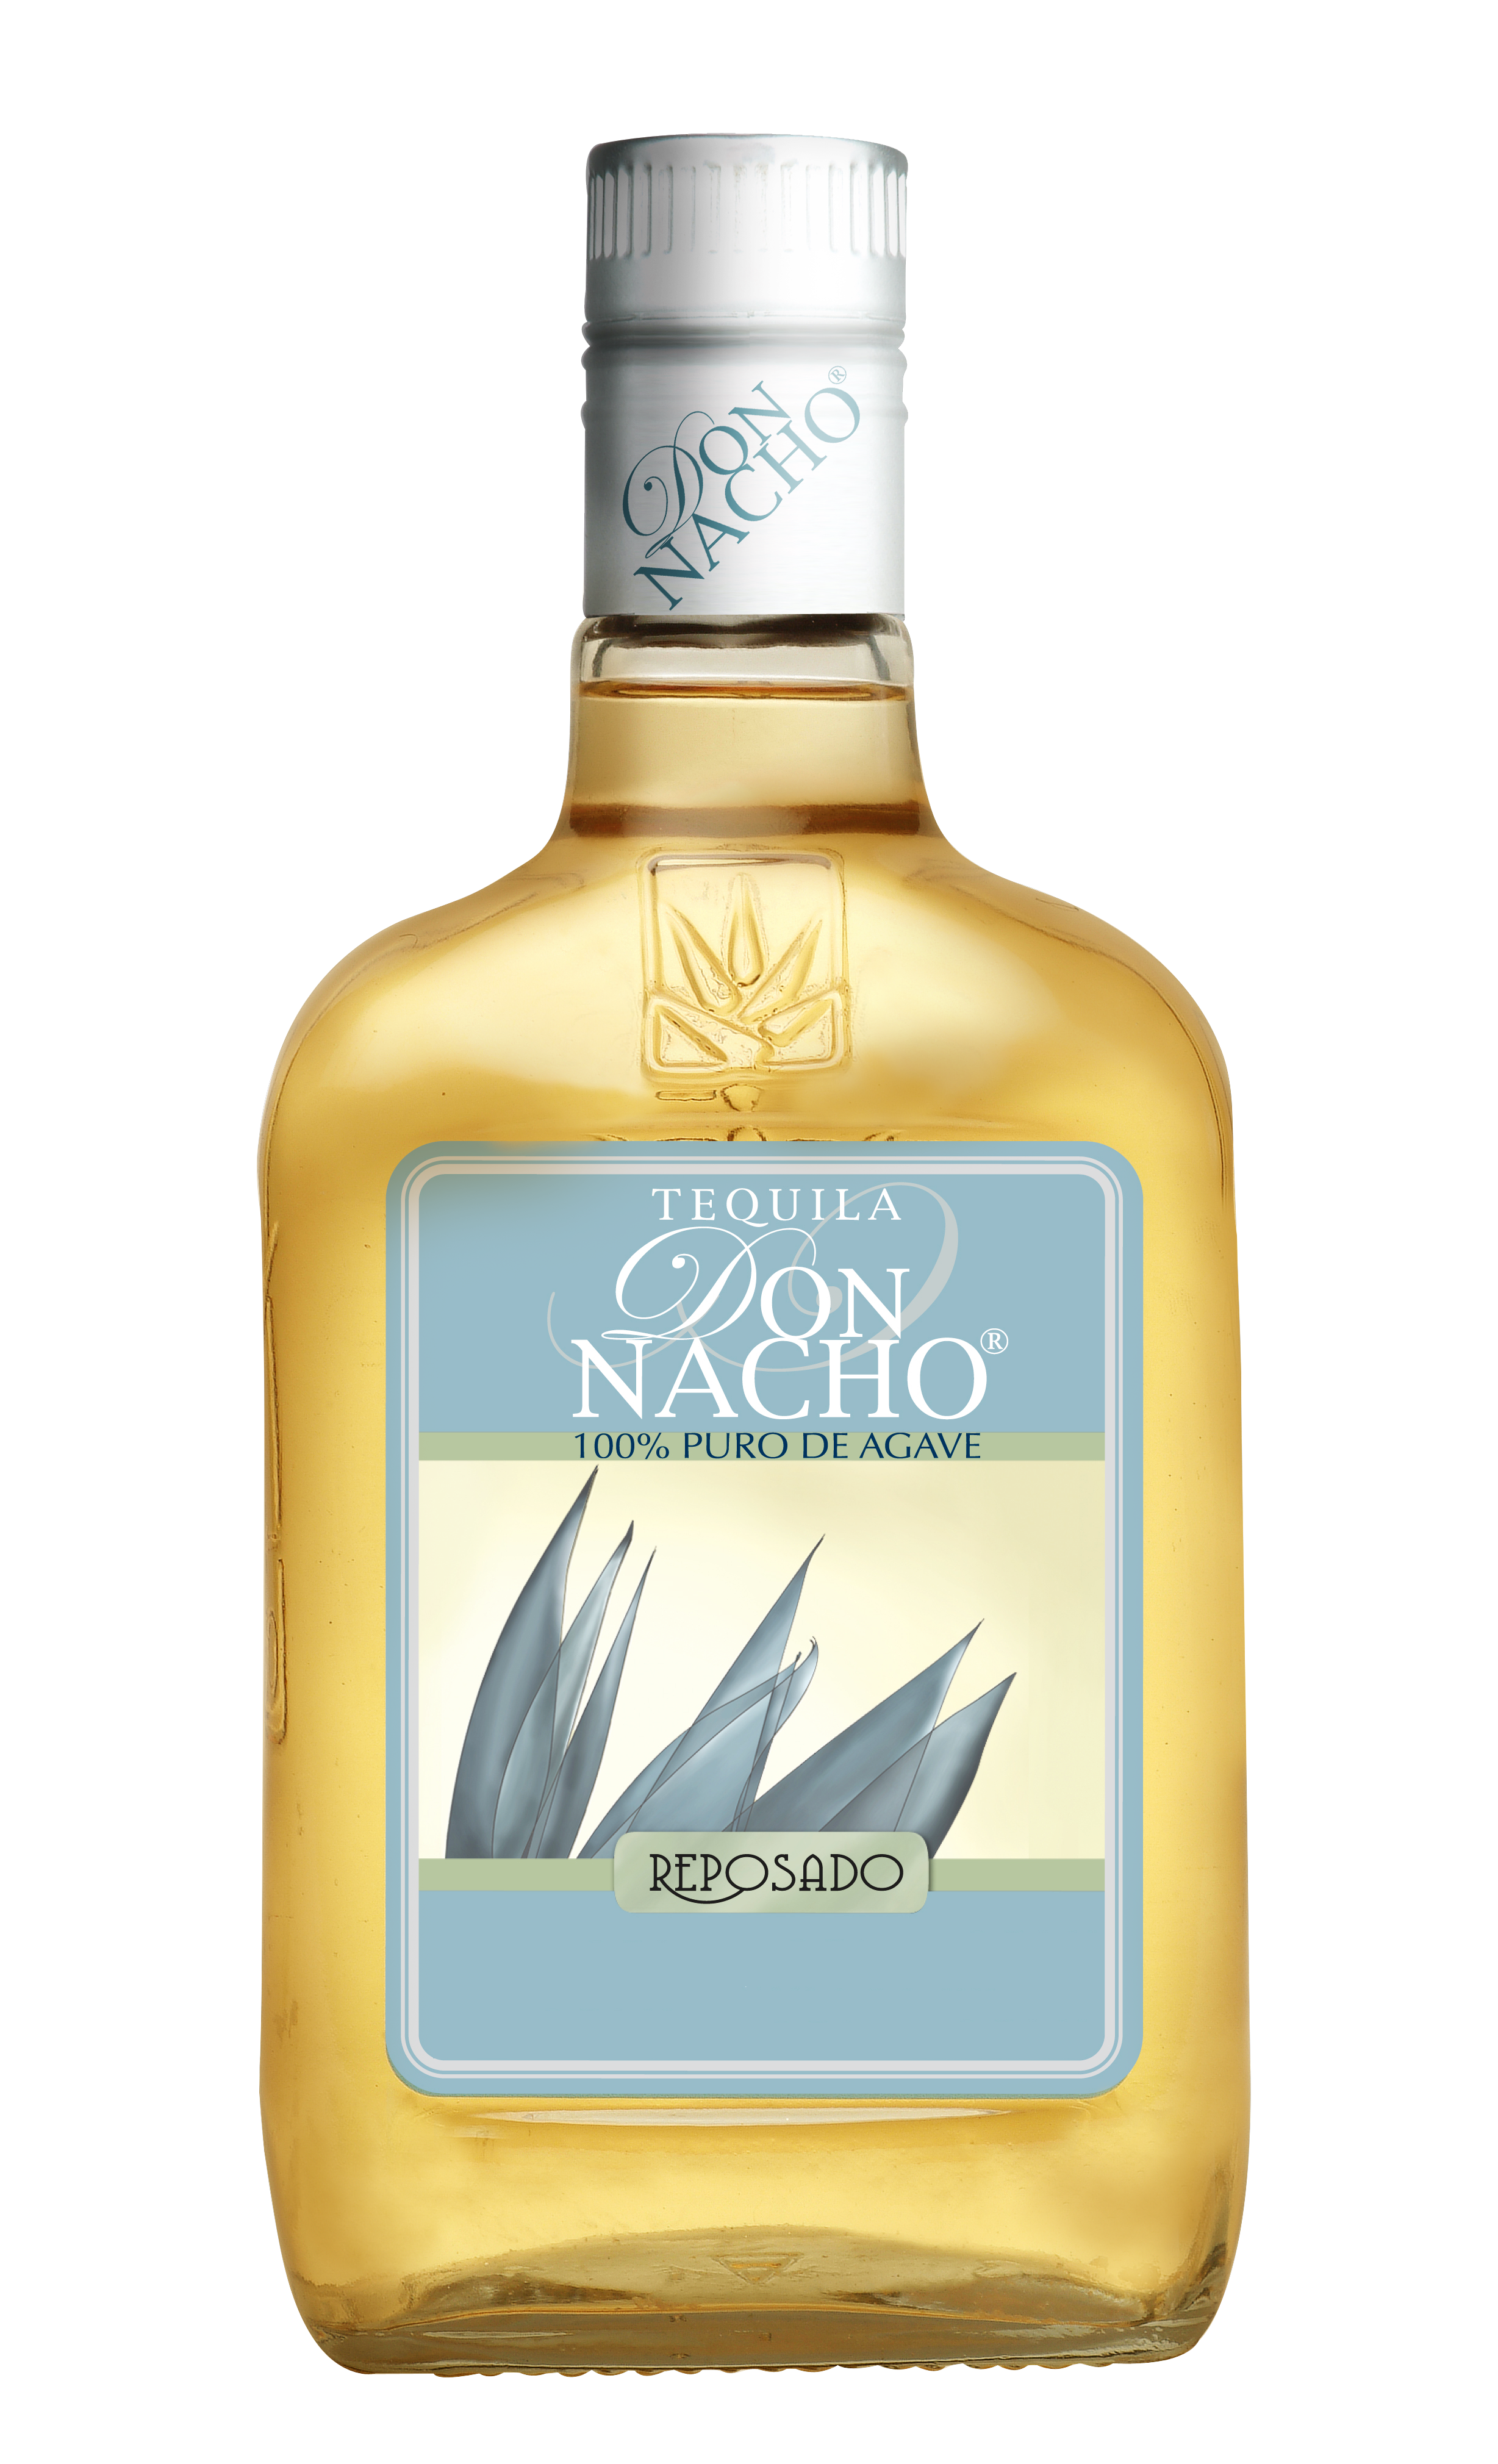 REPOSADO - Color: Dry yellowOdor: Herbaceous and woodyFlavor: VanillaAppearance: Crystaline yellow